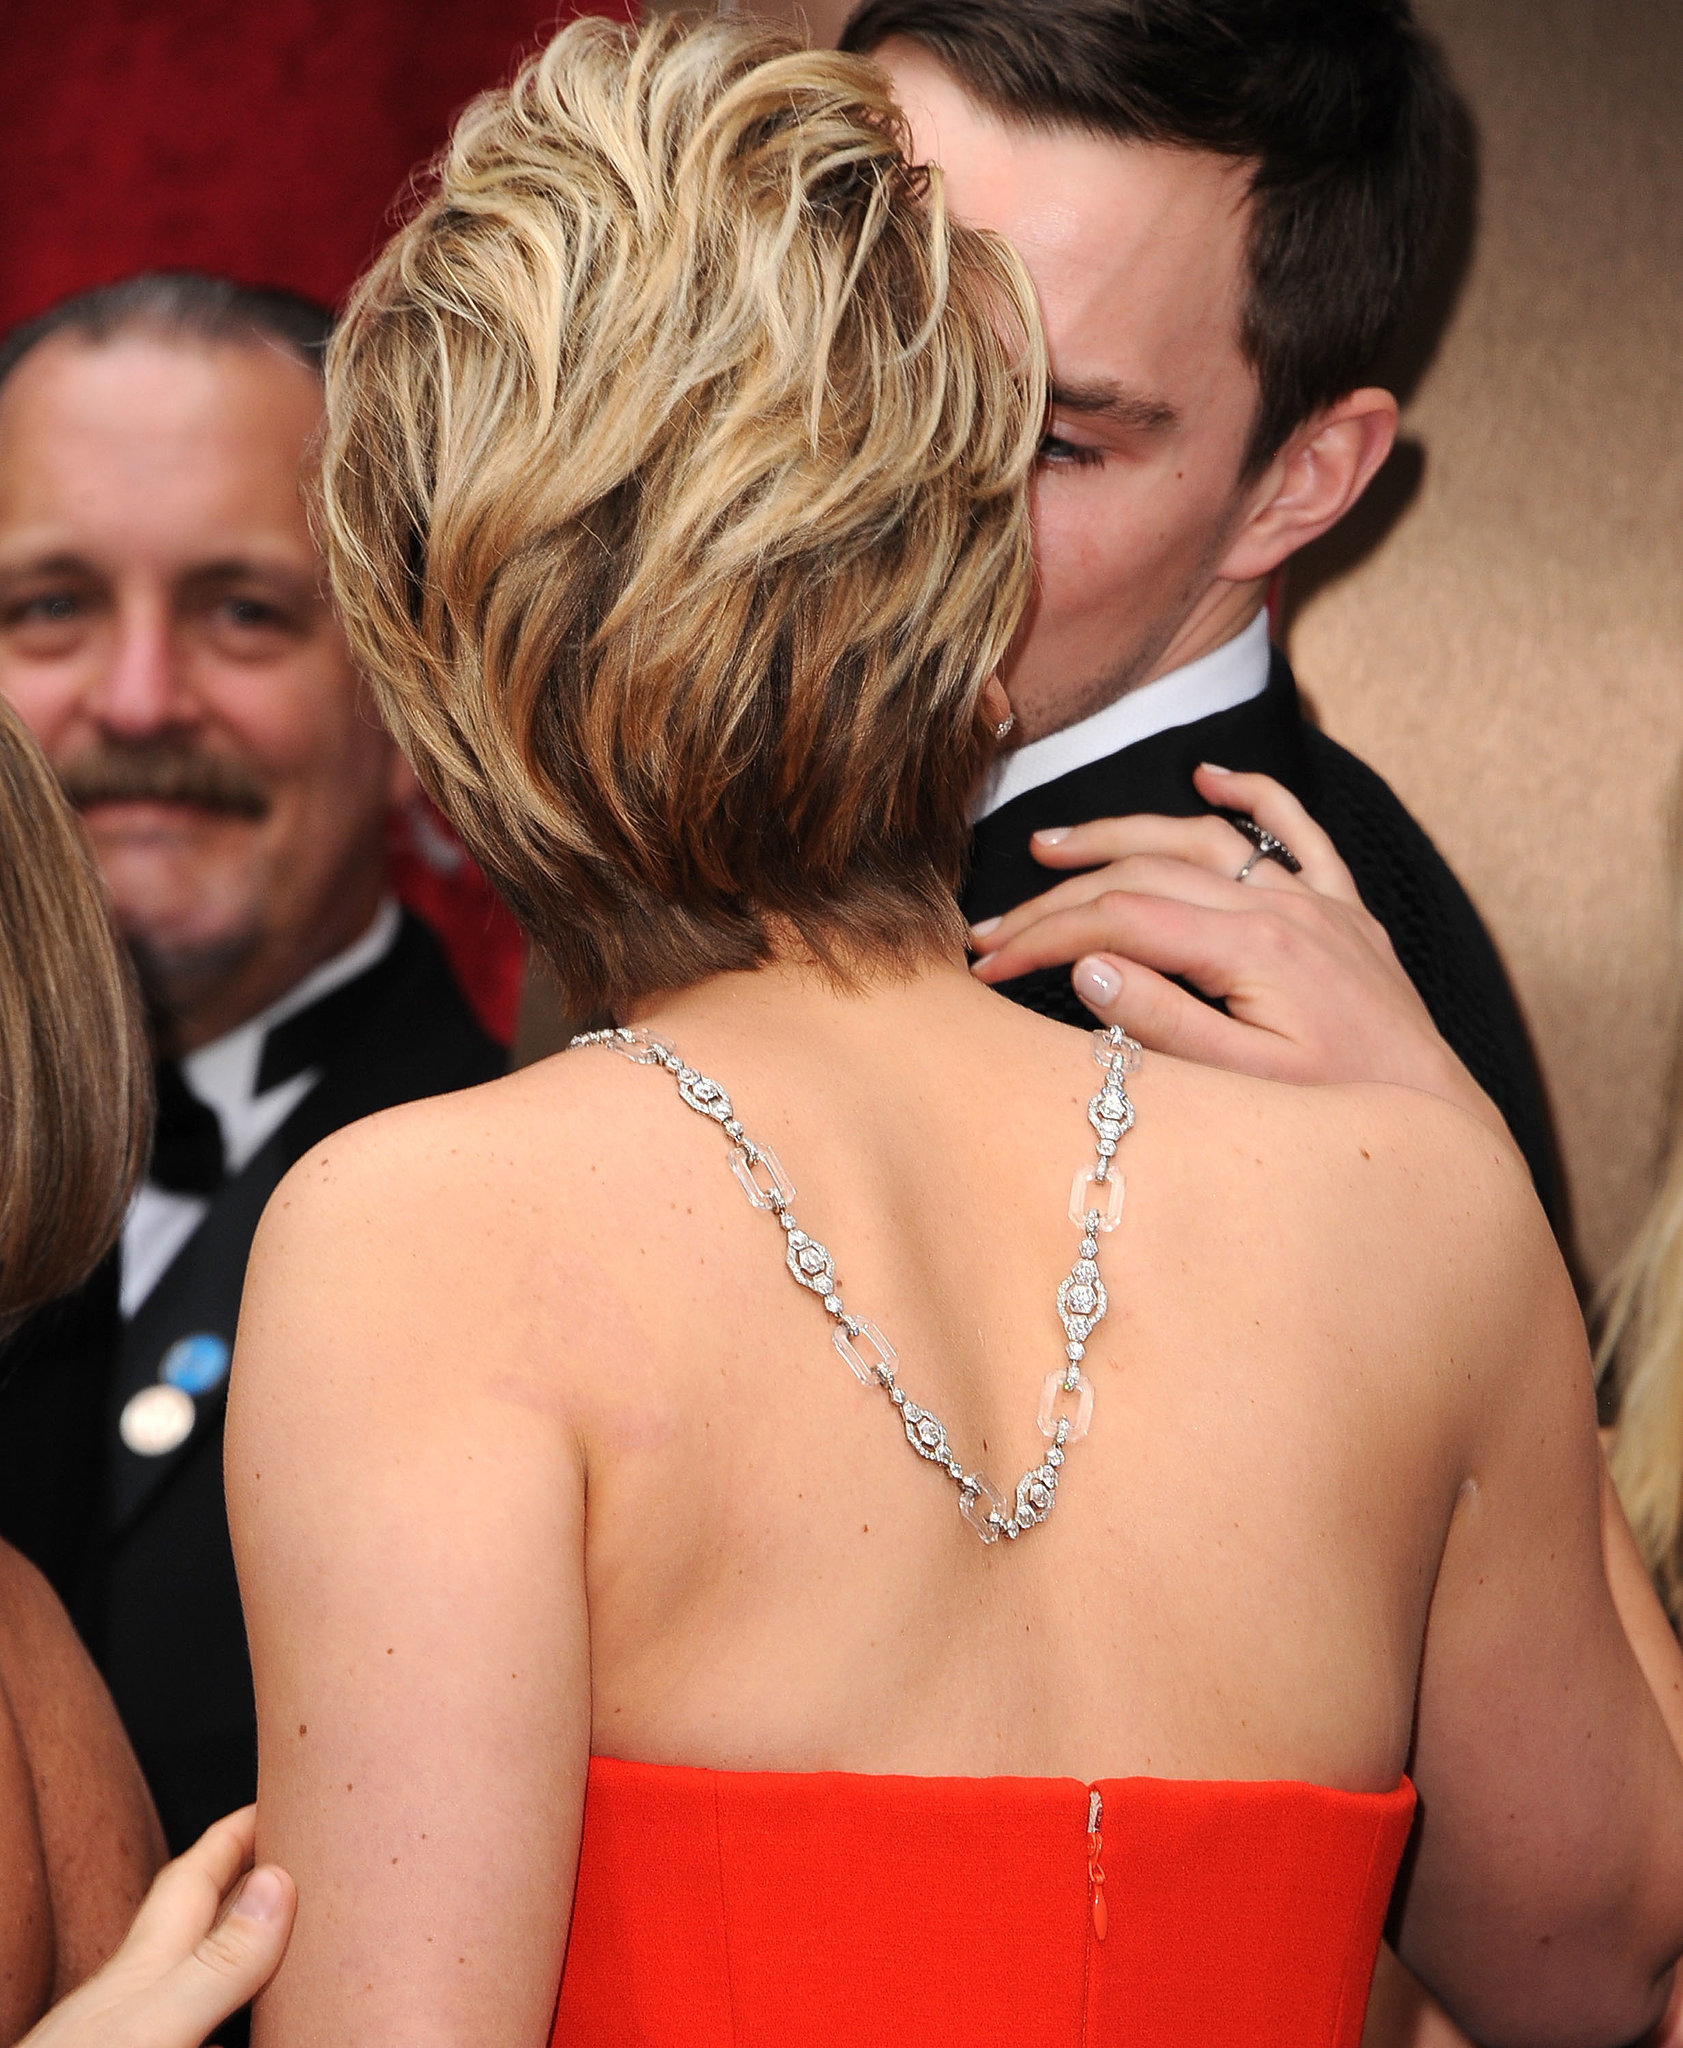 Jennifer Lawrence snuck in a kiss with boyfriend Nicholas Hoult on the Oscars red carpet.